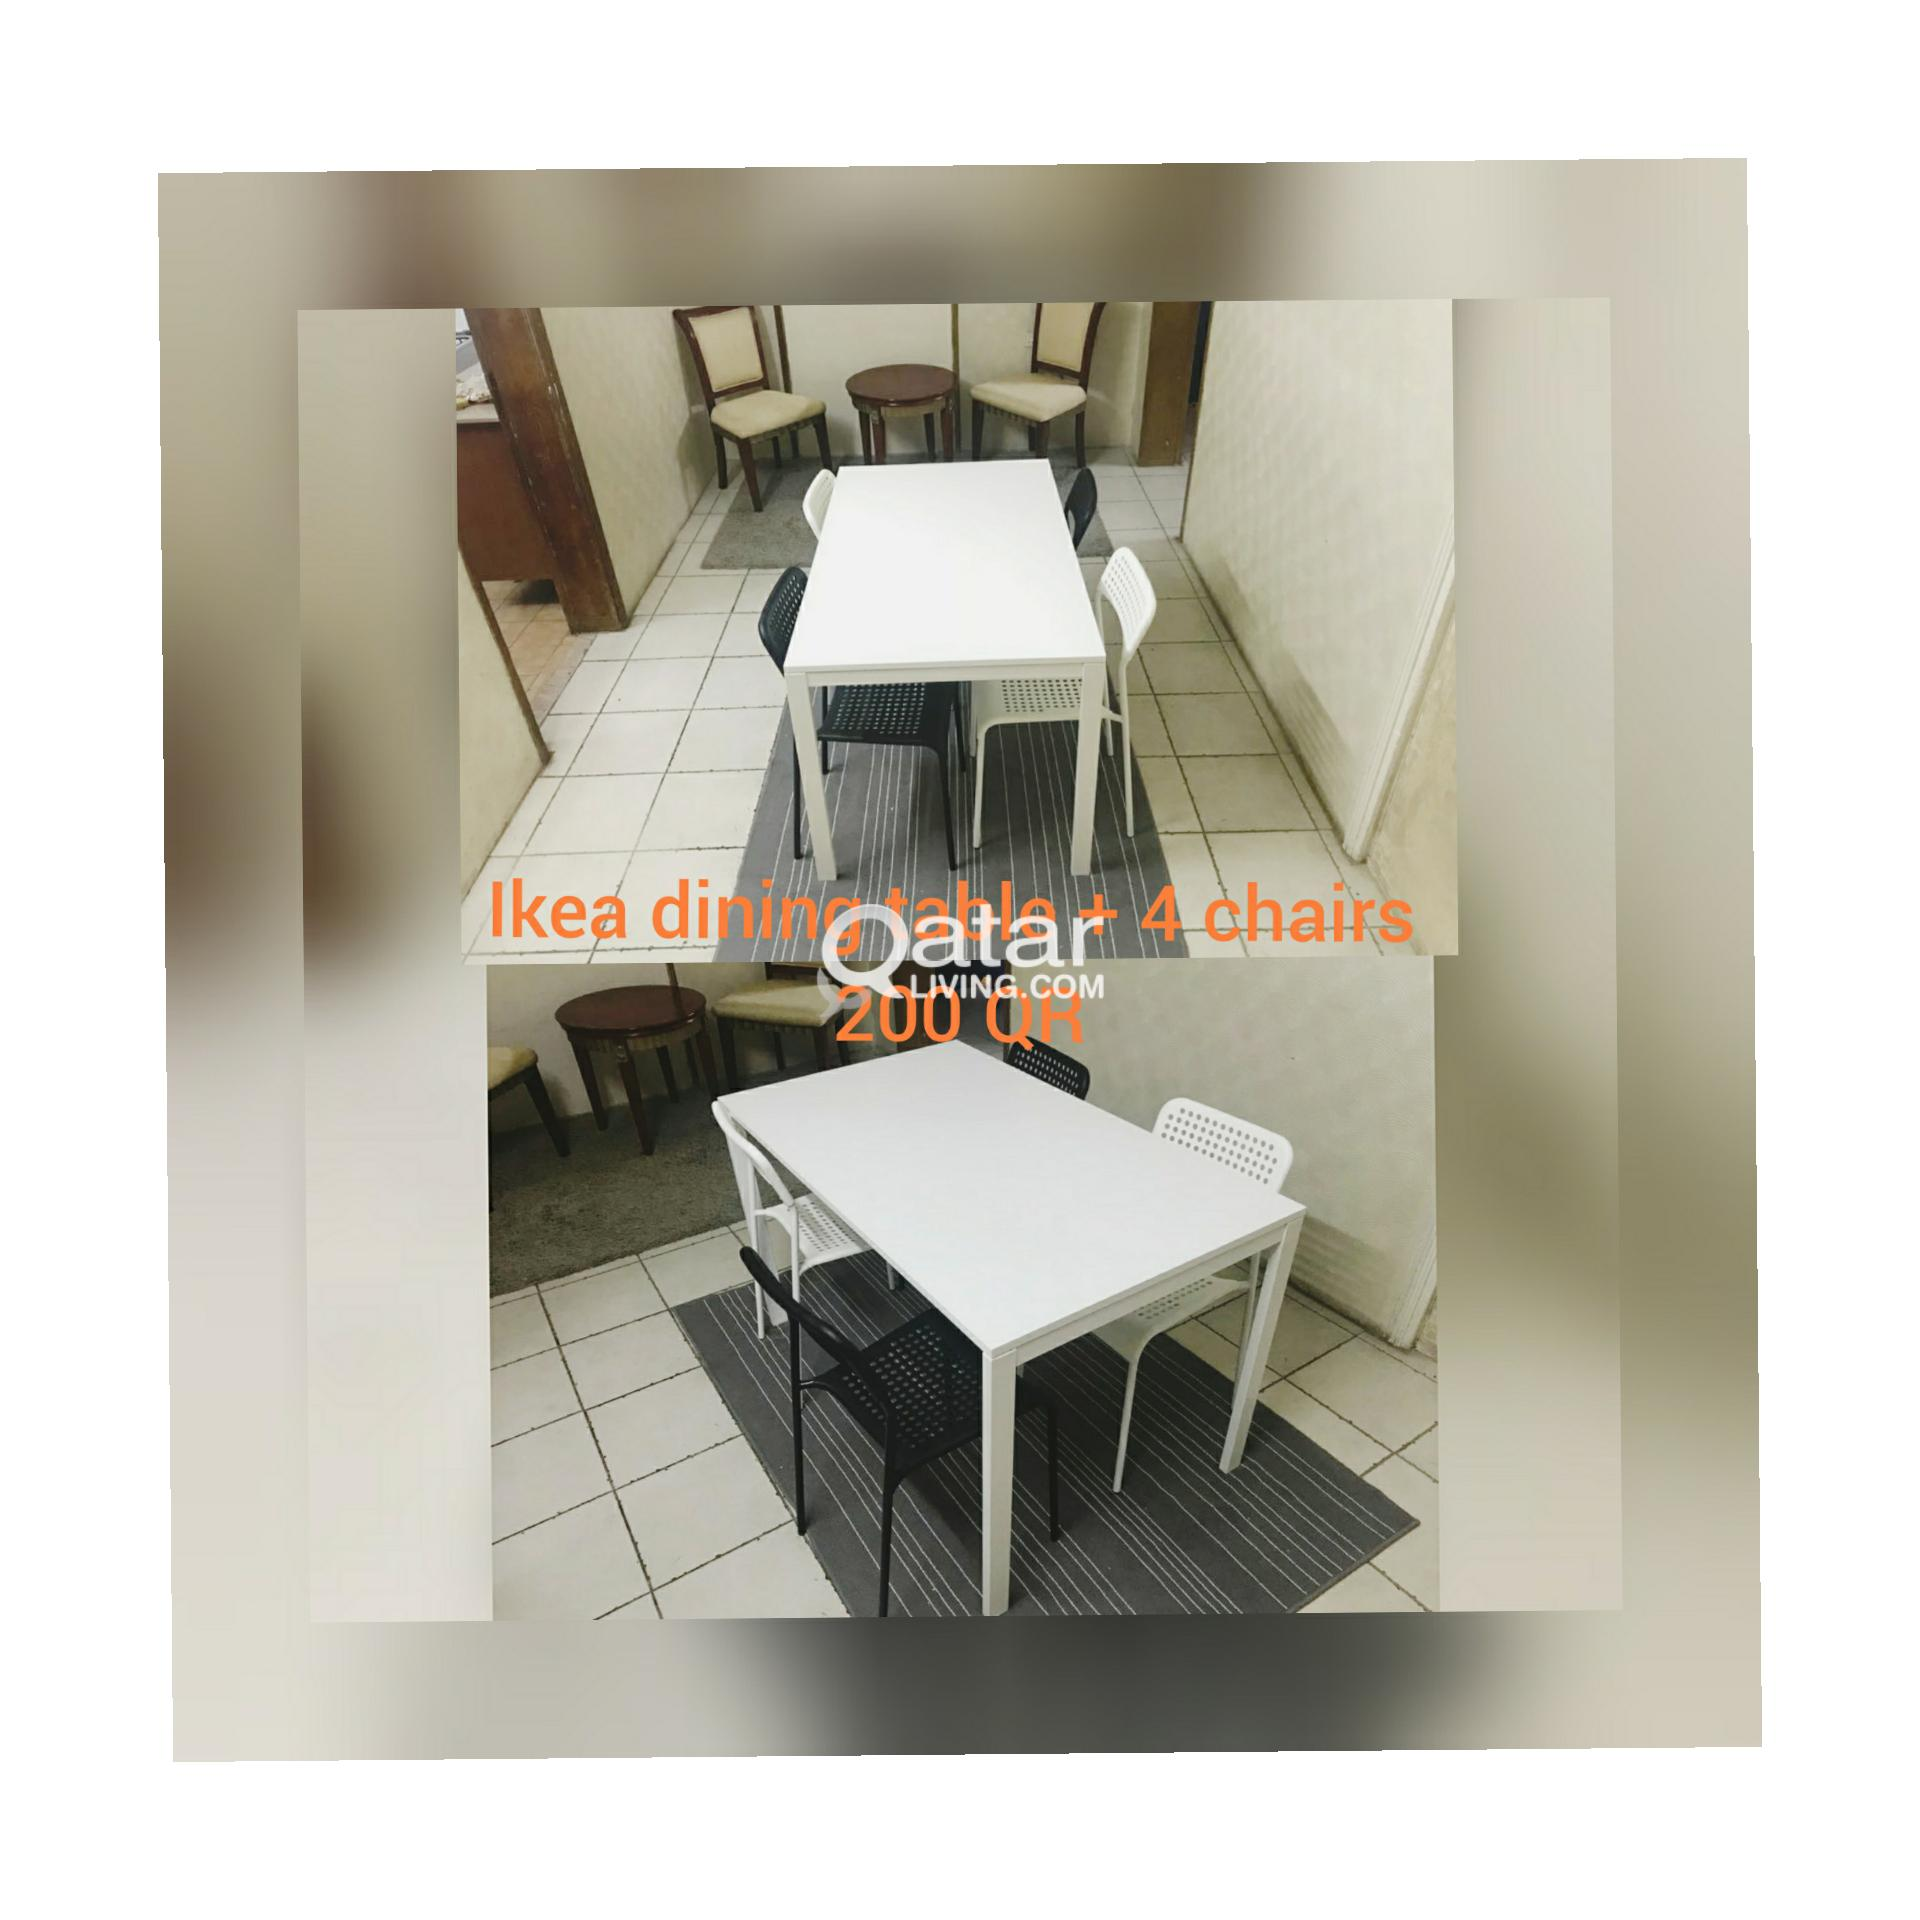 Information Furniture For Sale